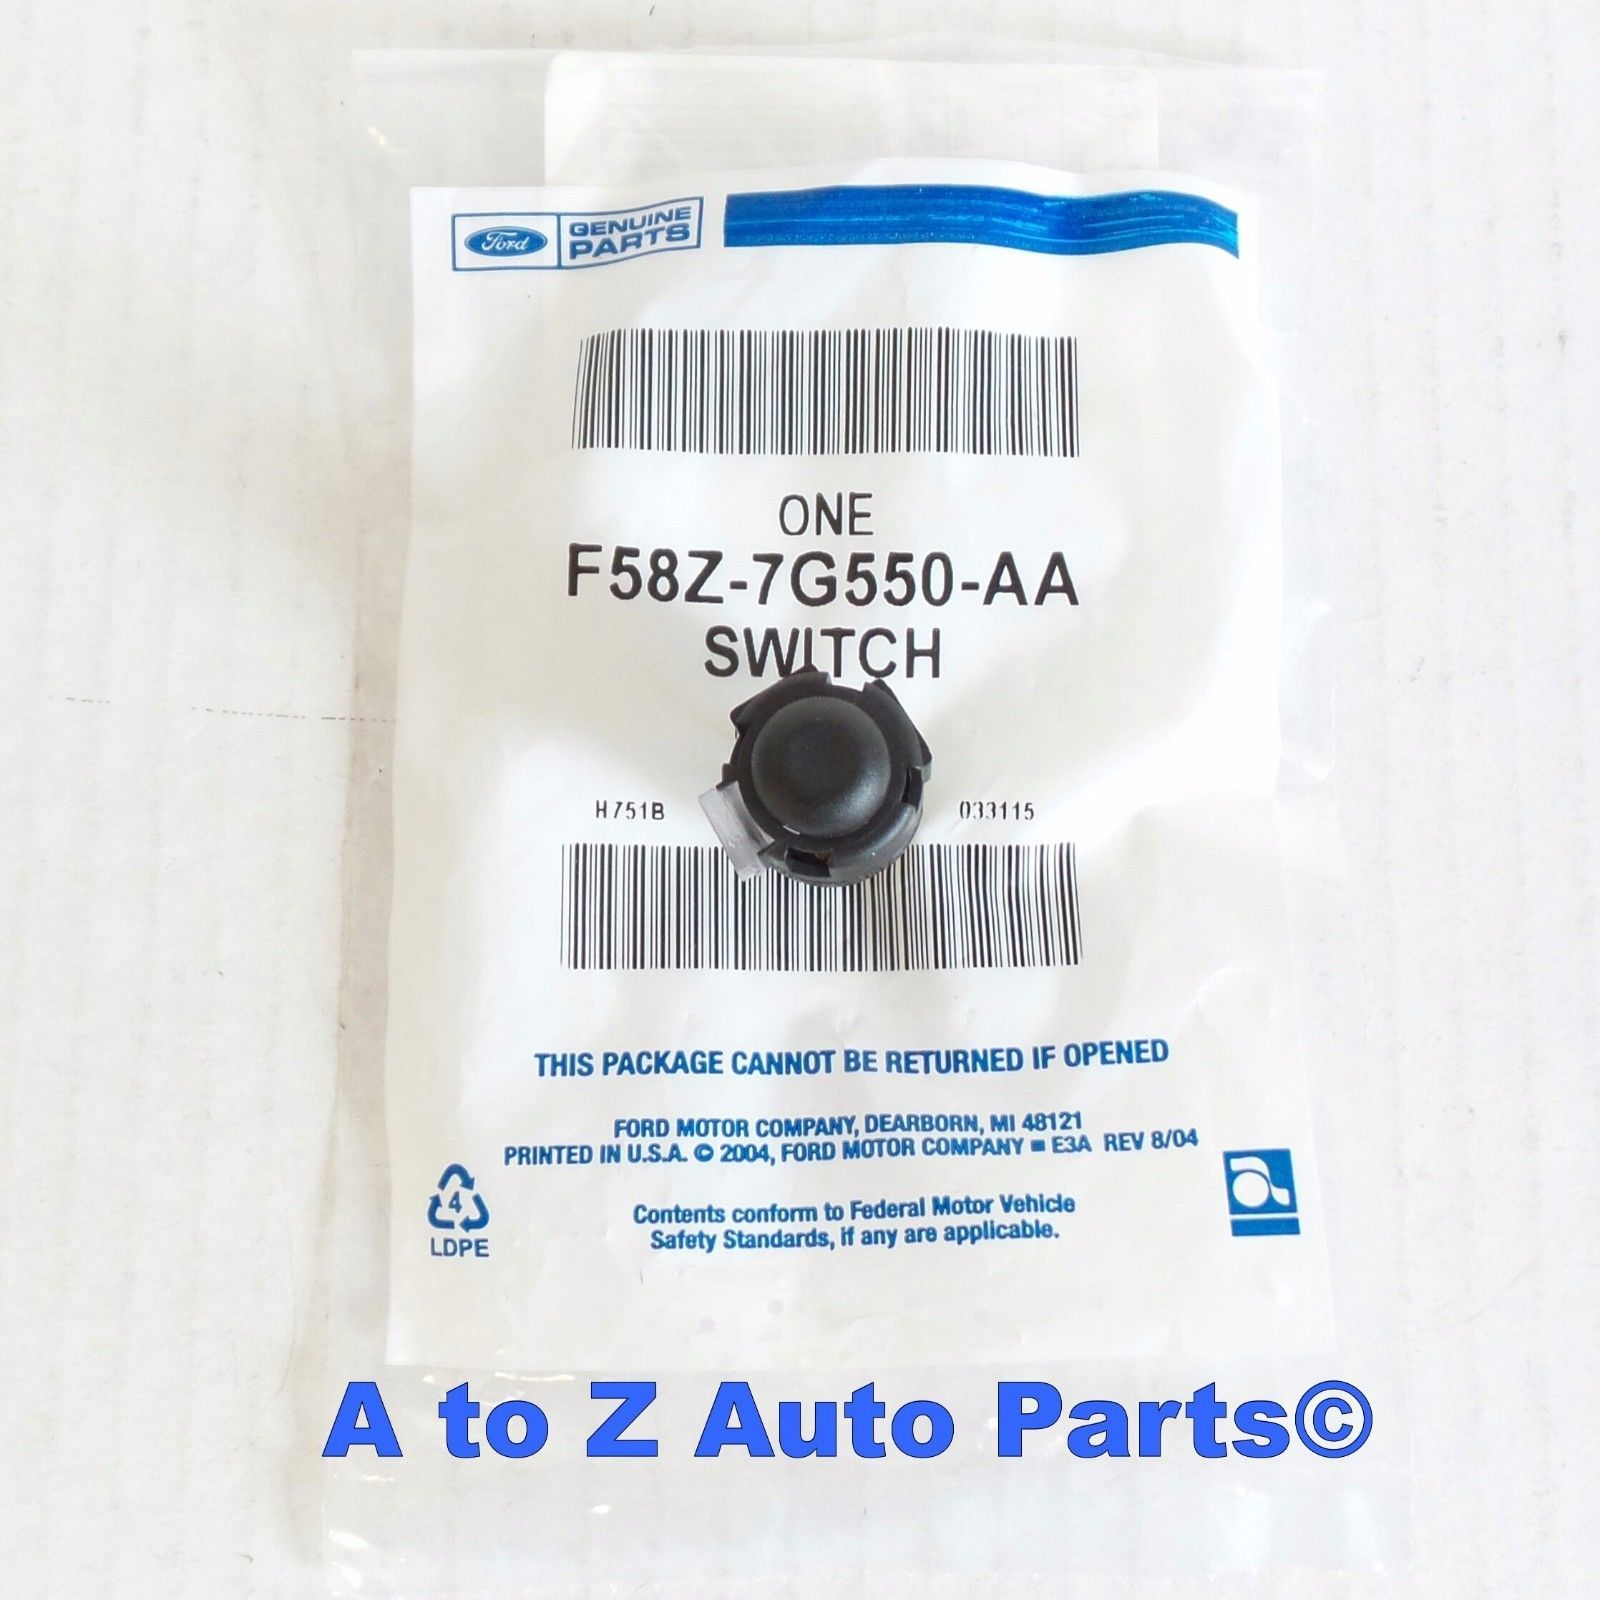 NEW 1992-2003 Ford F150, F250 Transmission Shift Overdrive Lockout Switch,OEM - $22.95